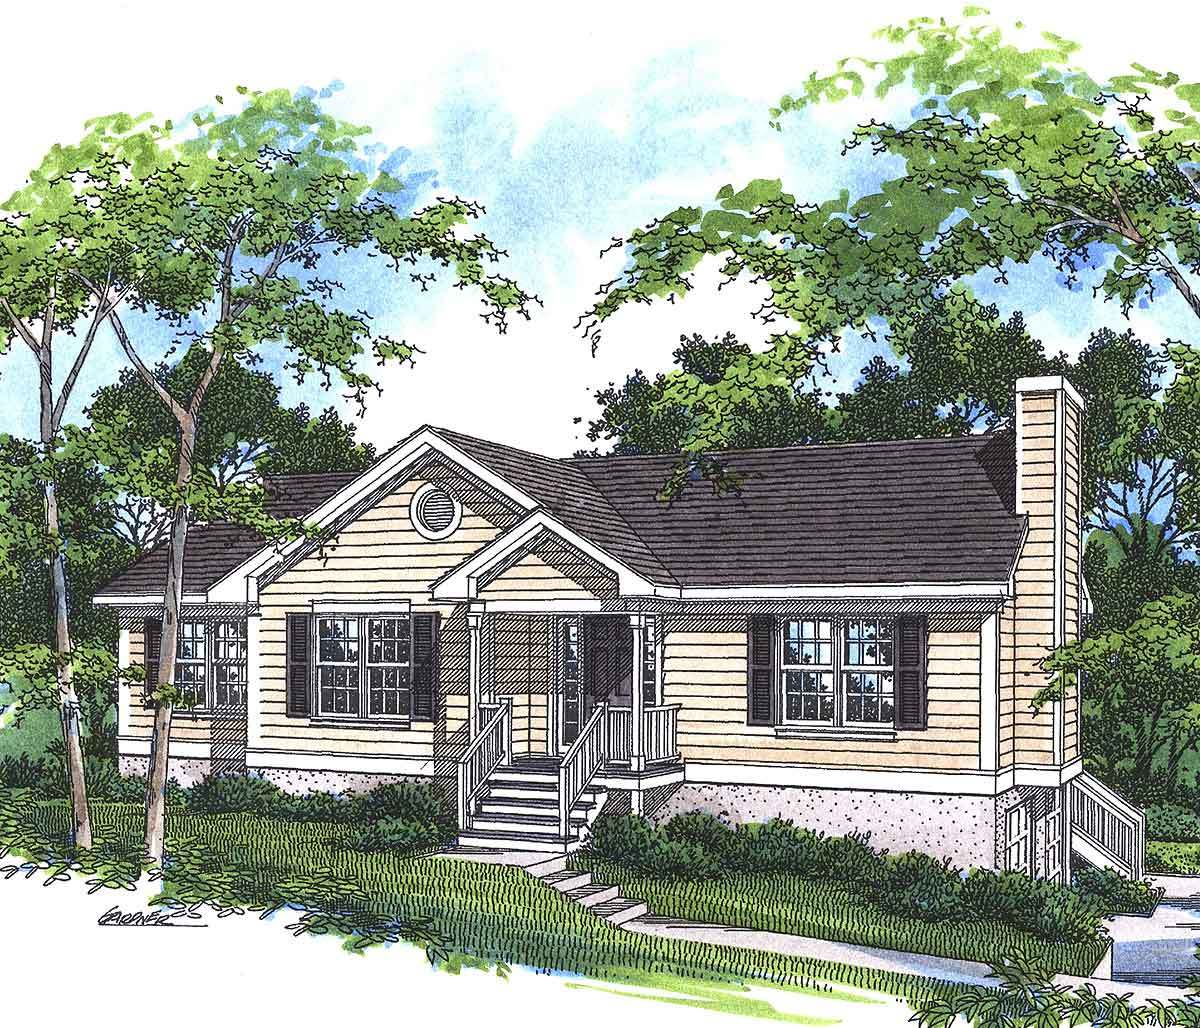 The perfect little ranch 92021vs architectural designs for The perfect house plan